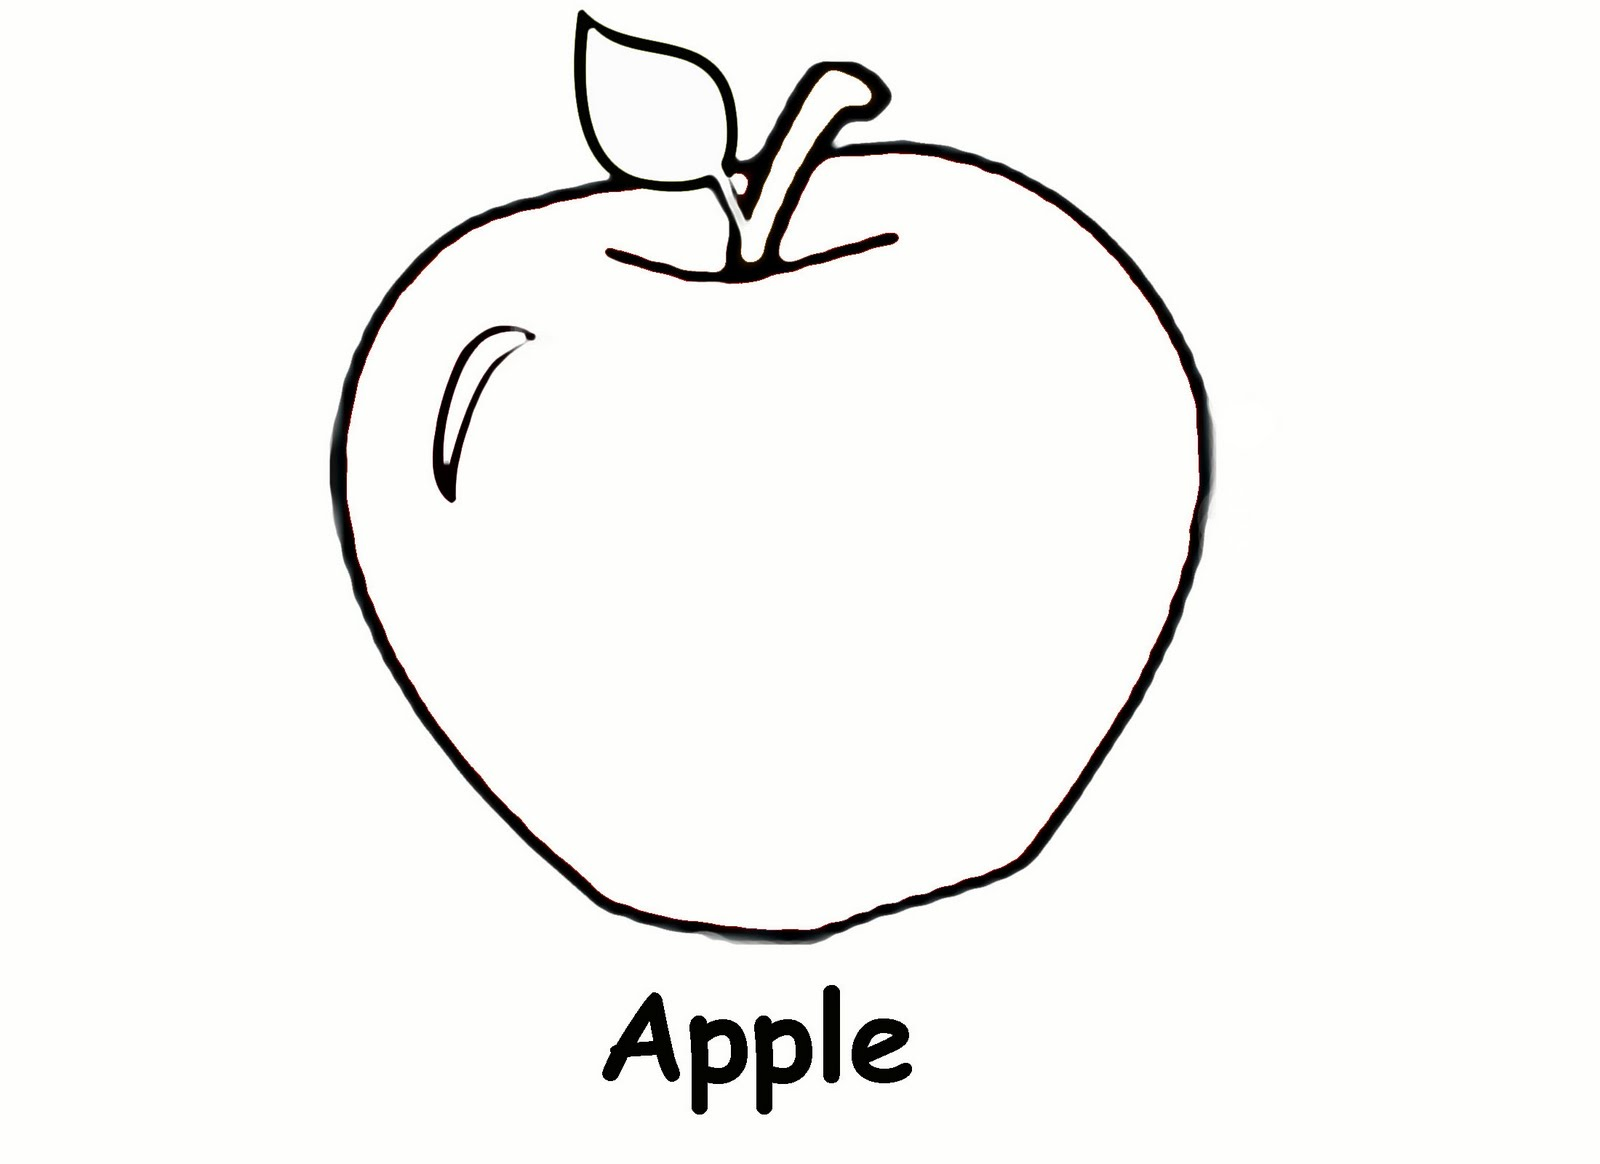 Sidther free printable preschool level coloring pages for Apple coloring pages